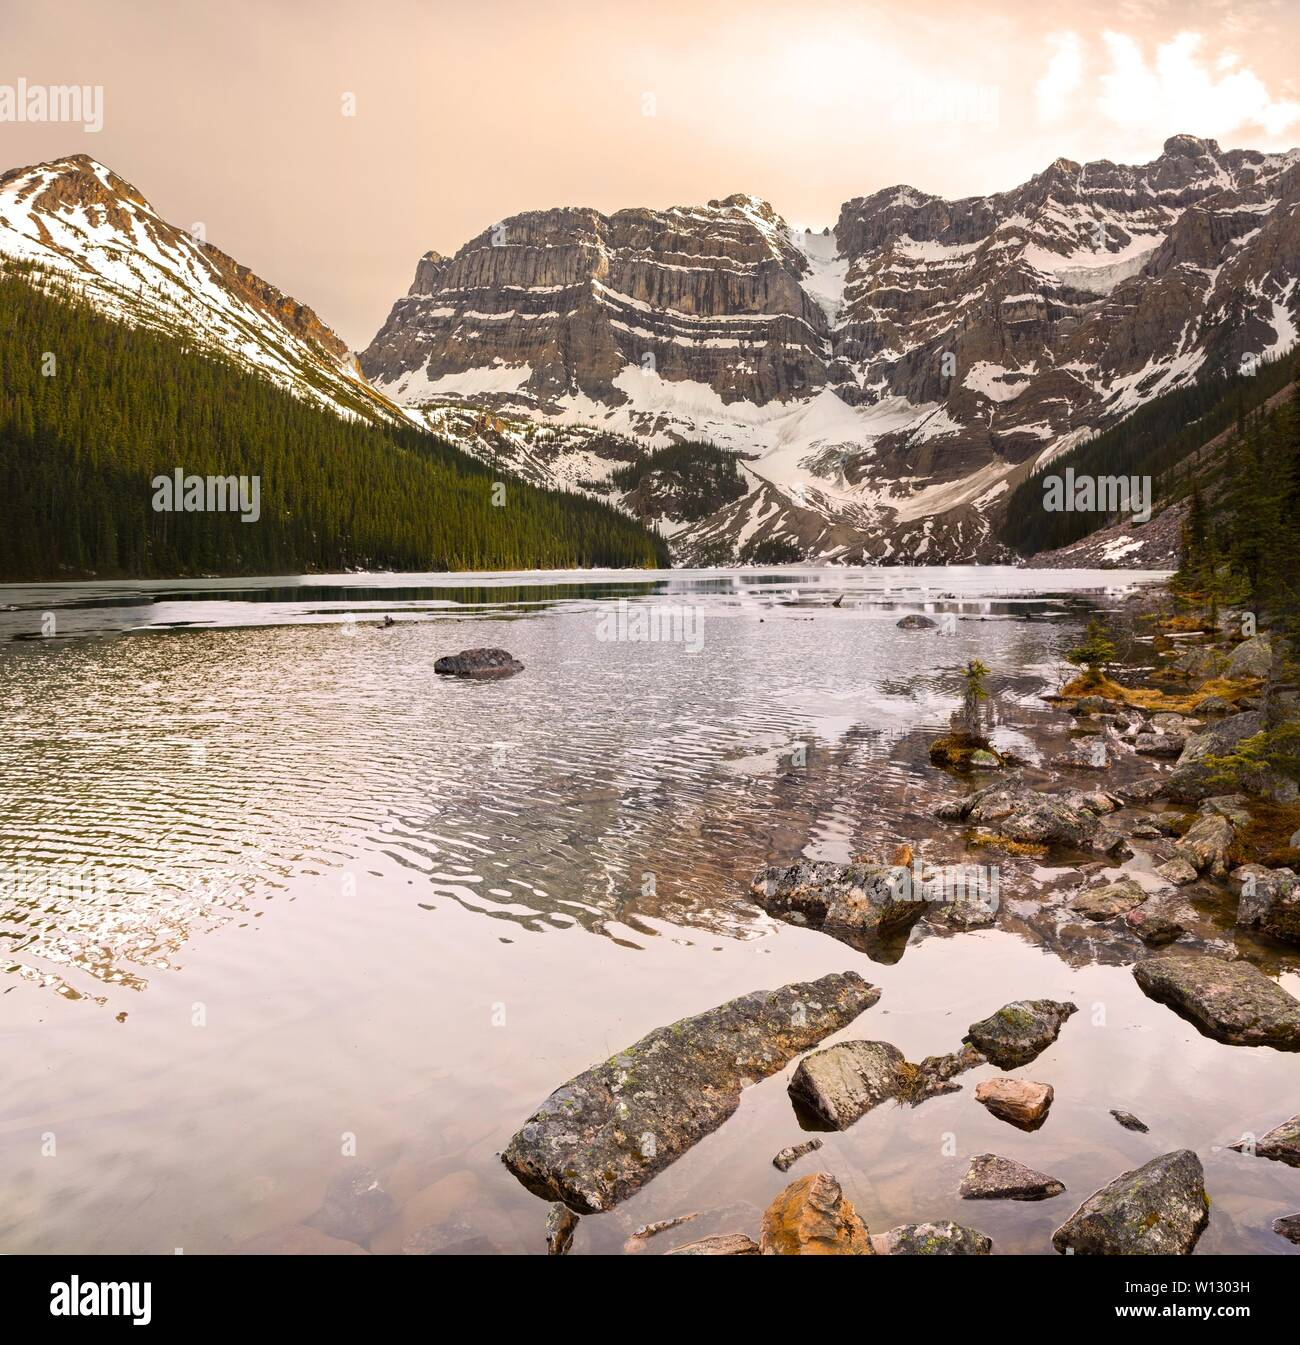 Vertical Panoramic Landscape View of Scenic Cirque Lake and Rugged Mountain Peaks in Banff National Park near Icefields Parkway, Canadian Rockies Stock Photo